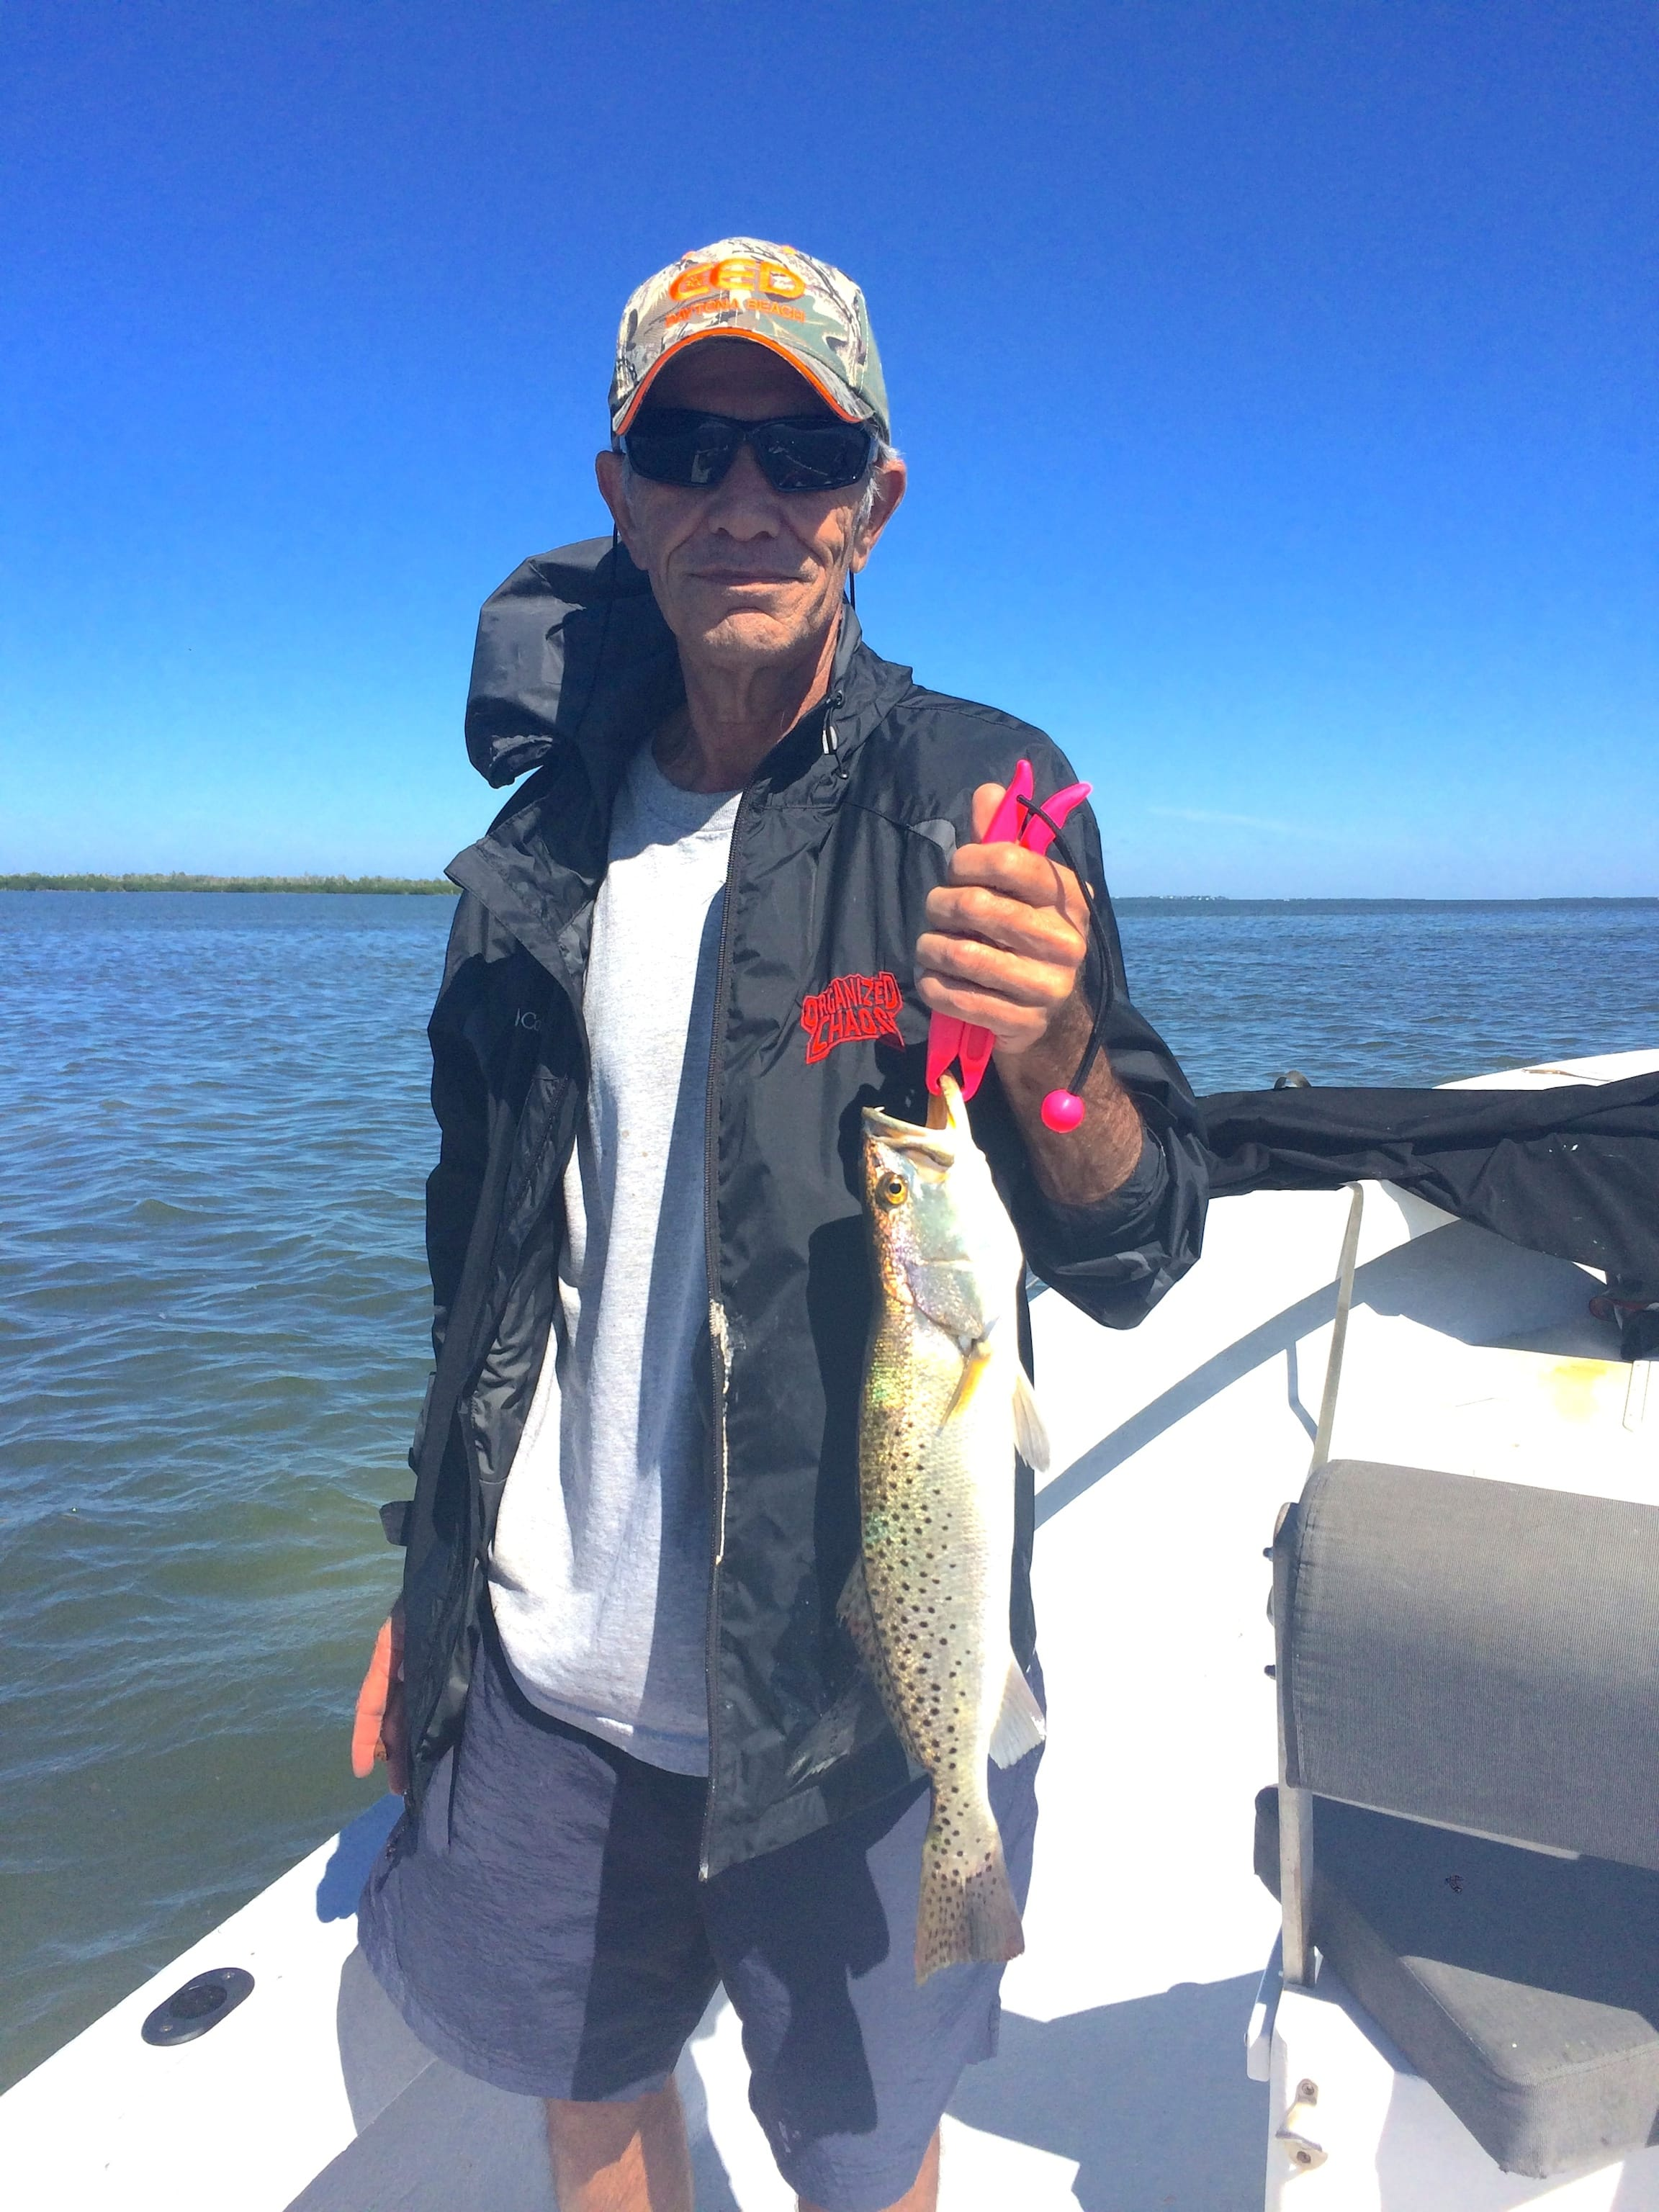 Fort myers fishing report 10 26 14 fortmyers fort for Ft myers fishing report